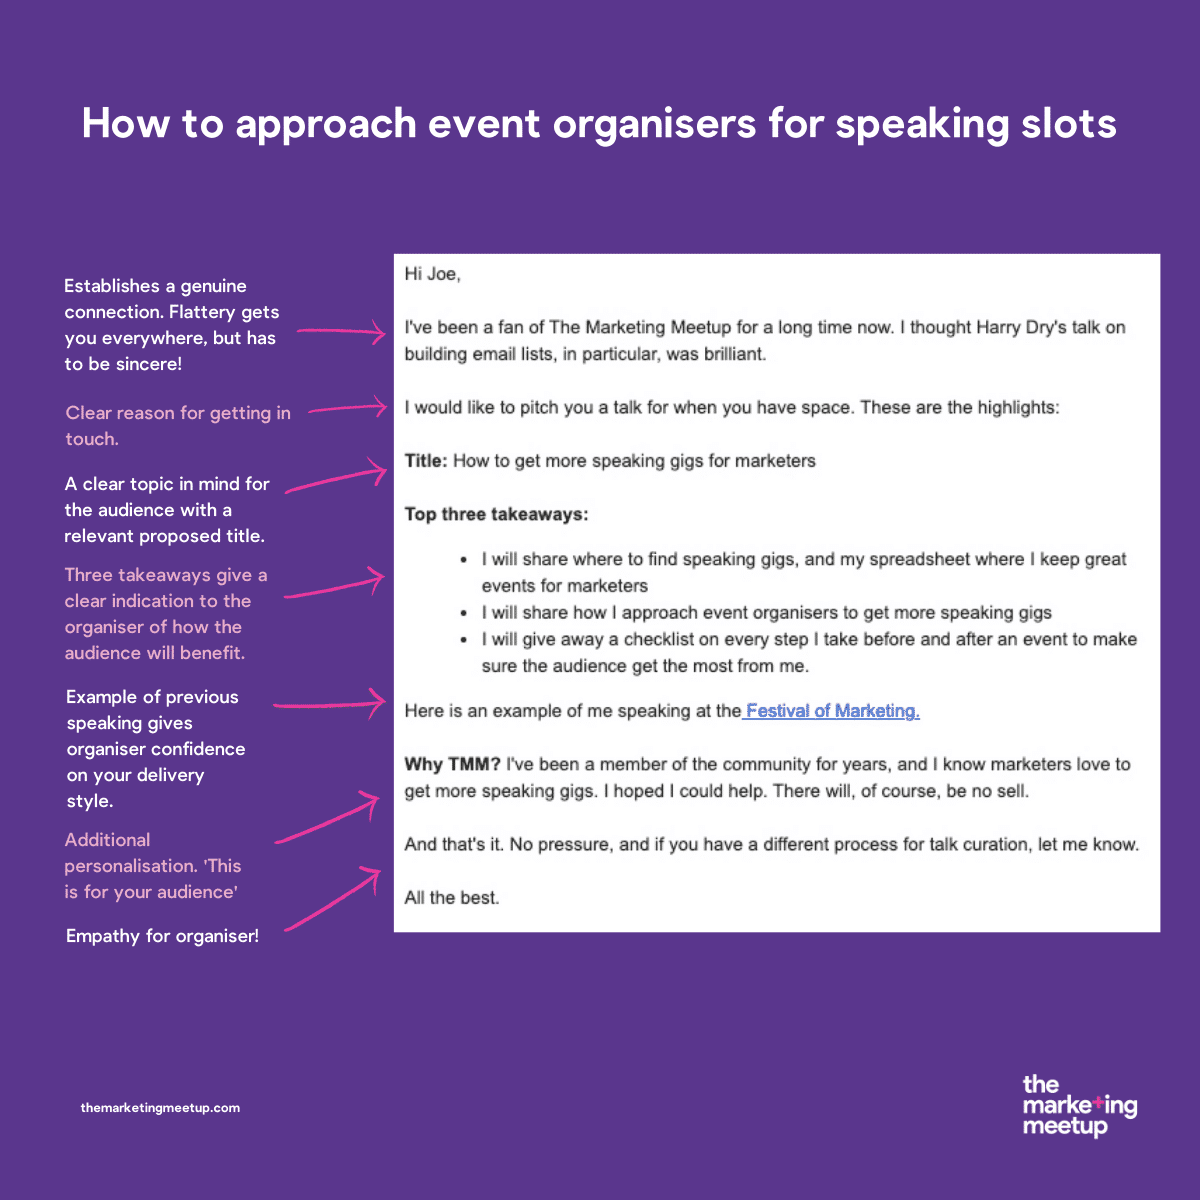 A template for approaching event organisers for speaking opportunities